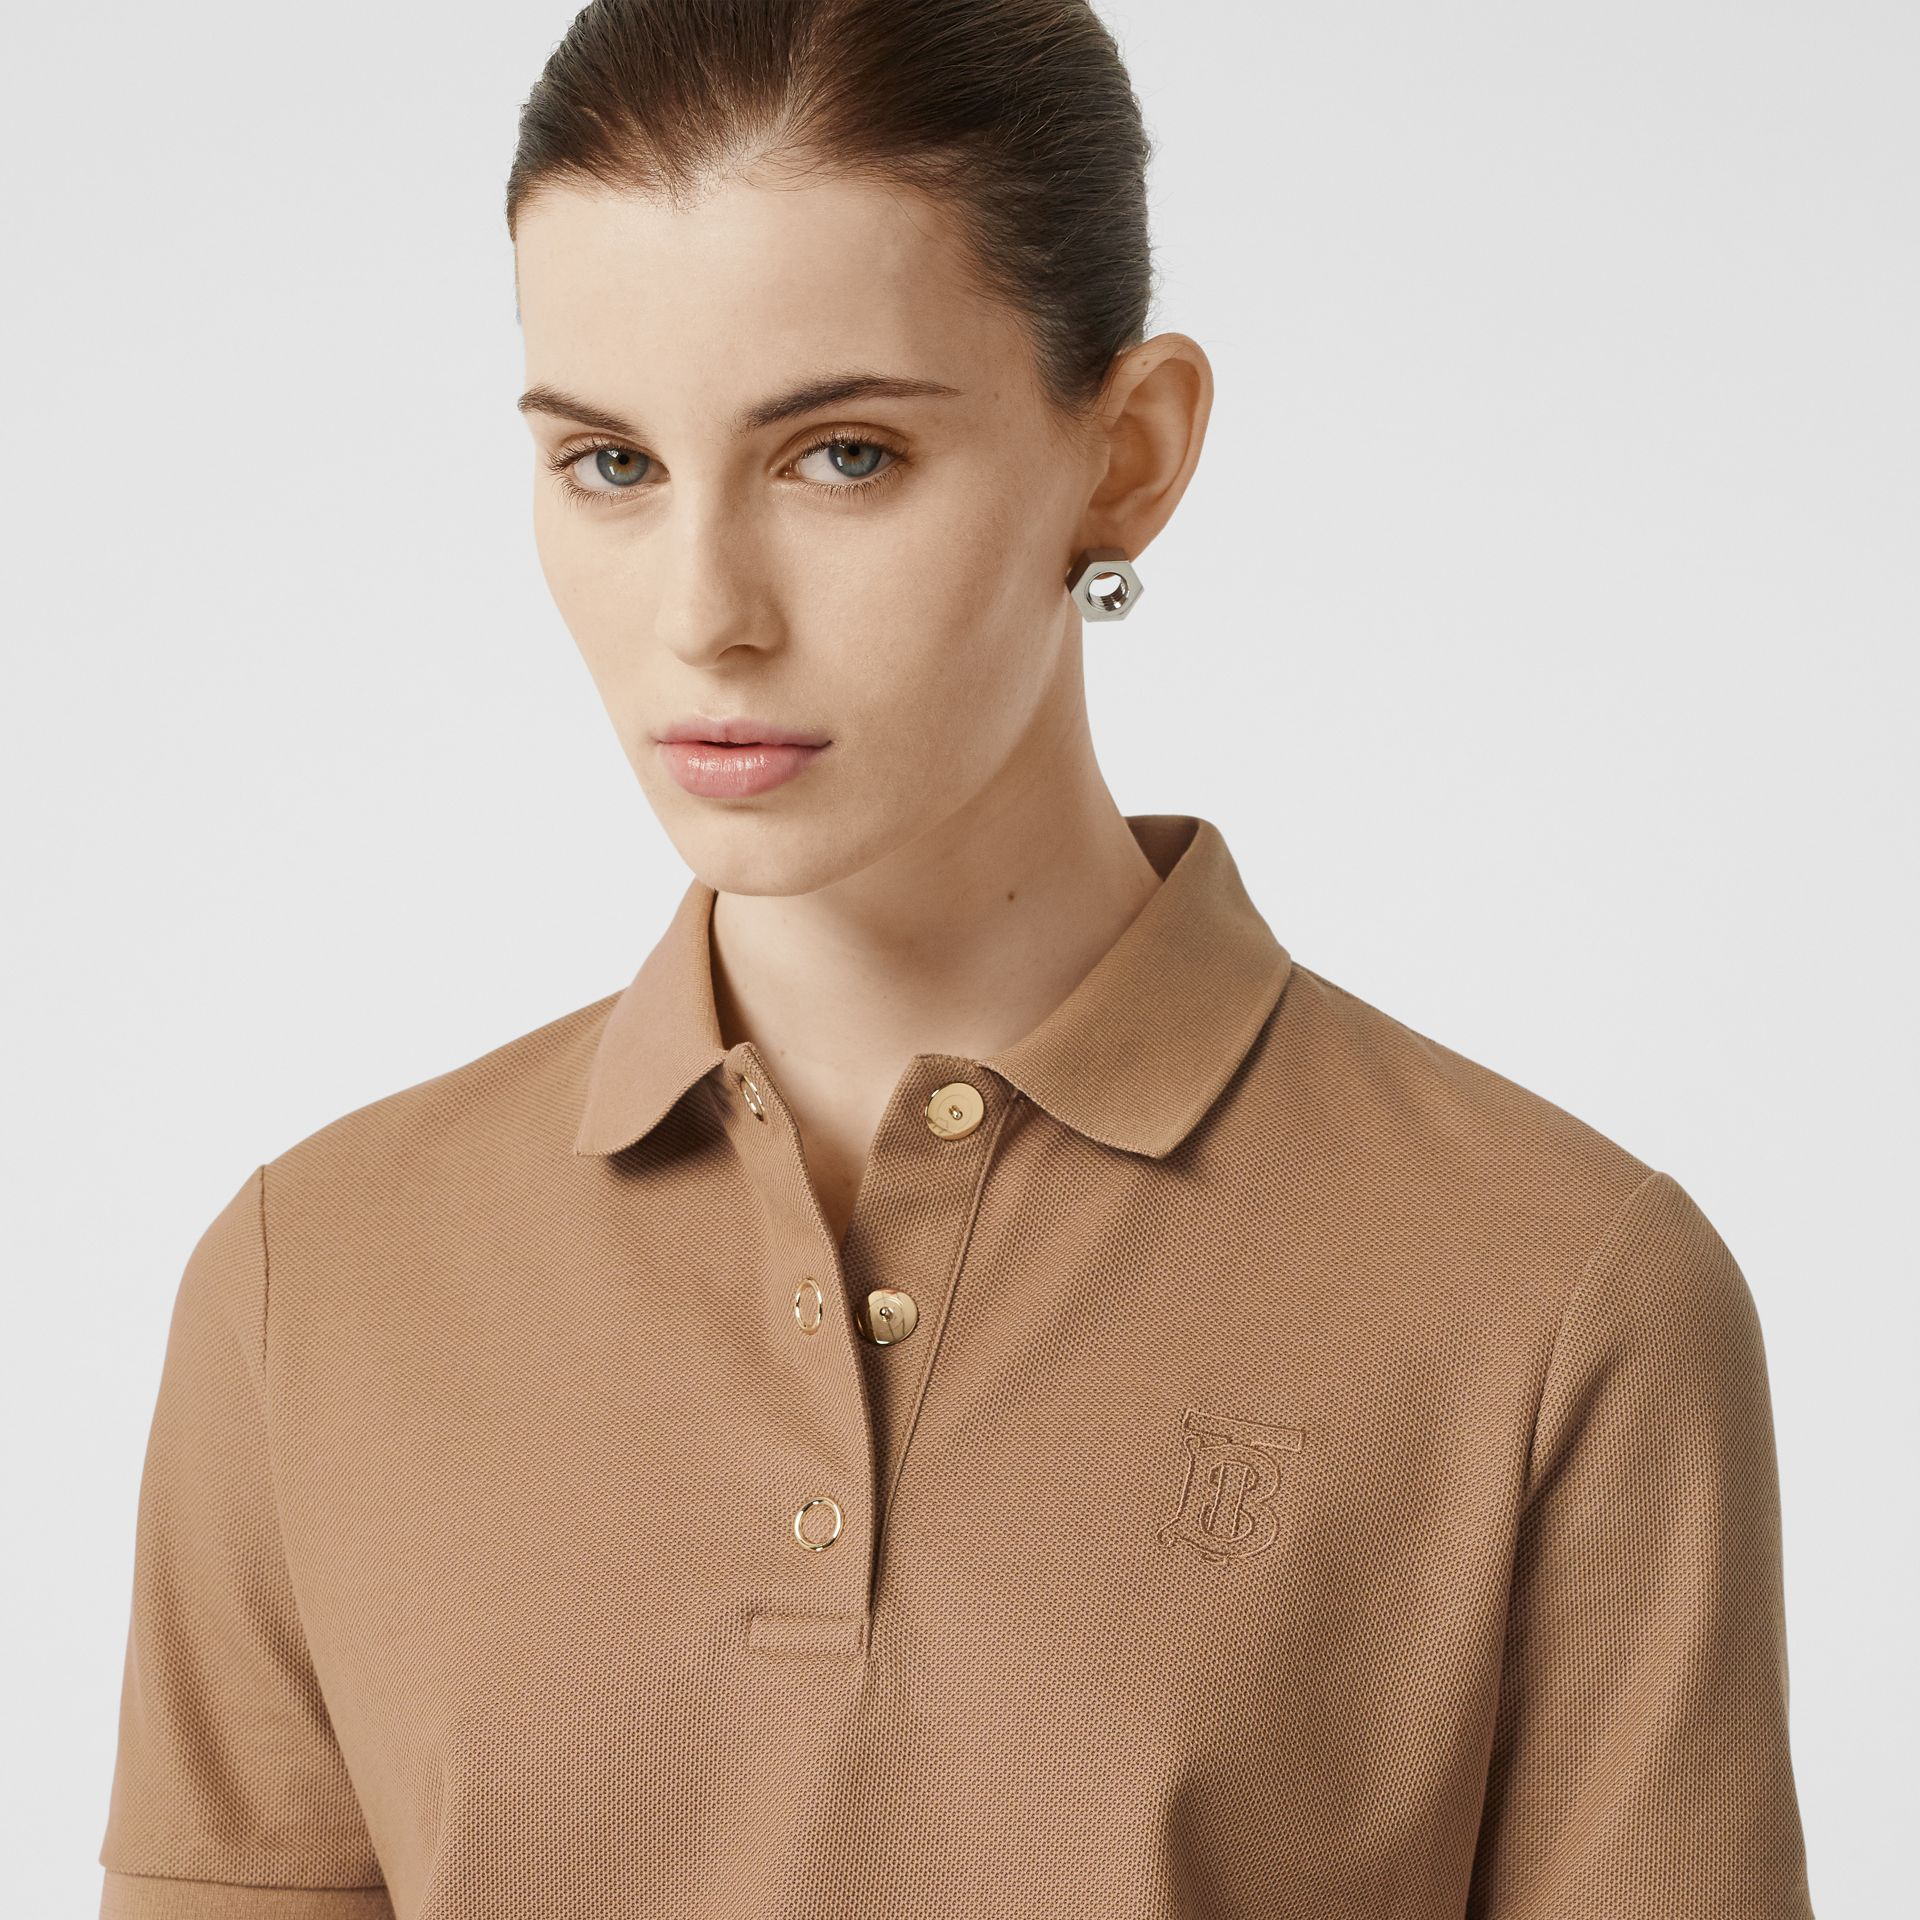 Monogram Motif Cotton Piqué Polo Shirt in Camel - Women | Burberry United States - gallery image 1